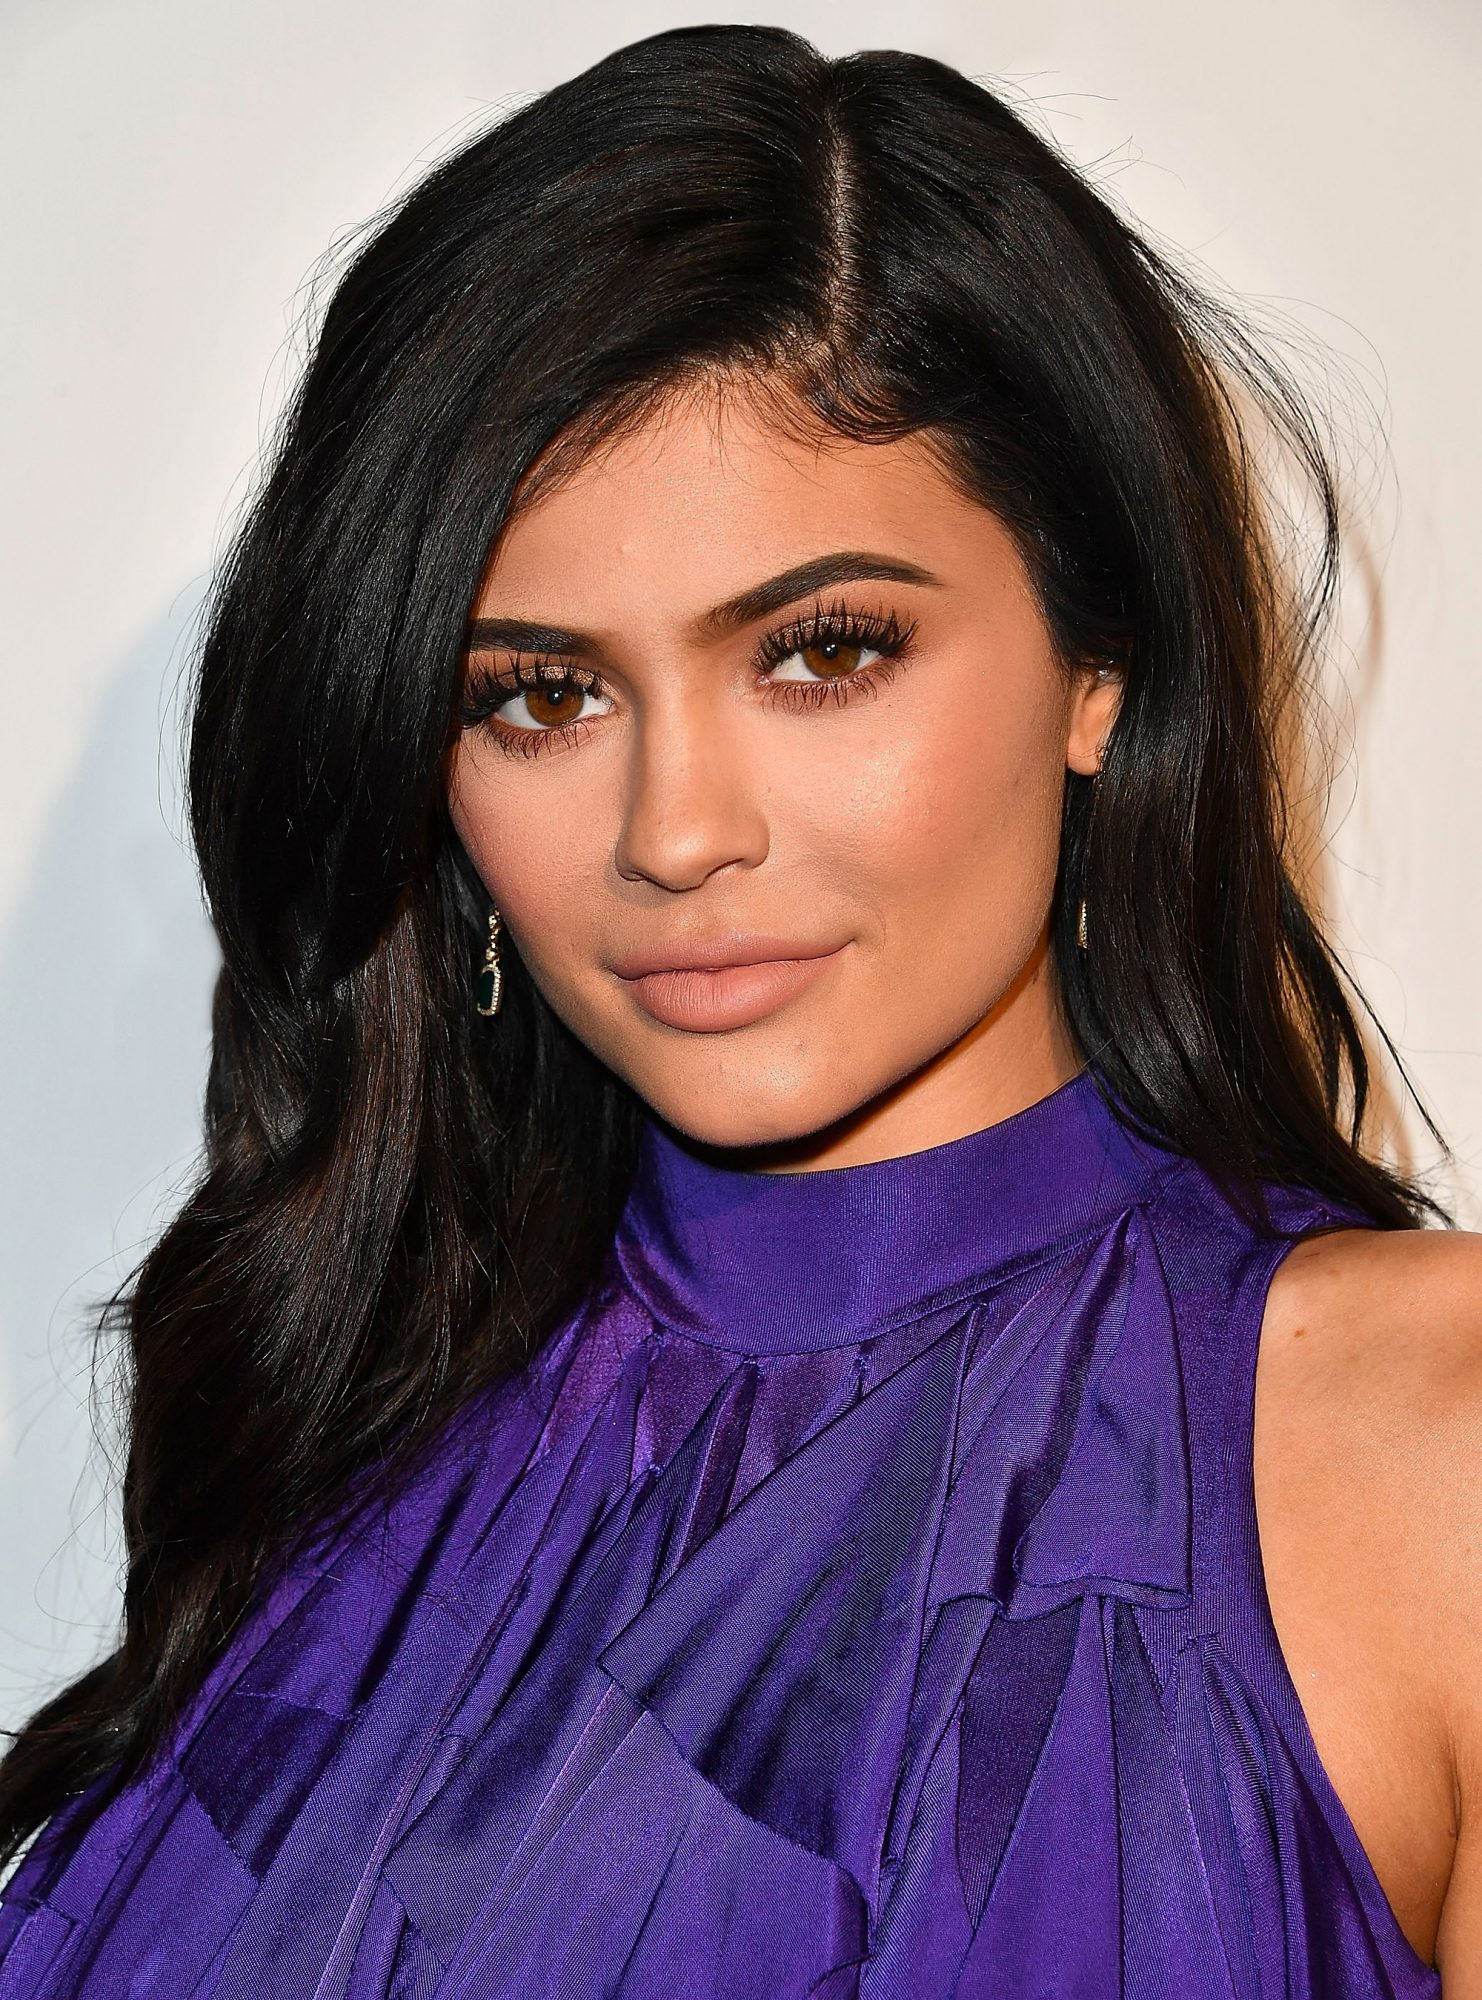 Kylie Jenner New Hair - LEAD